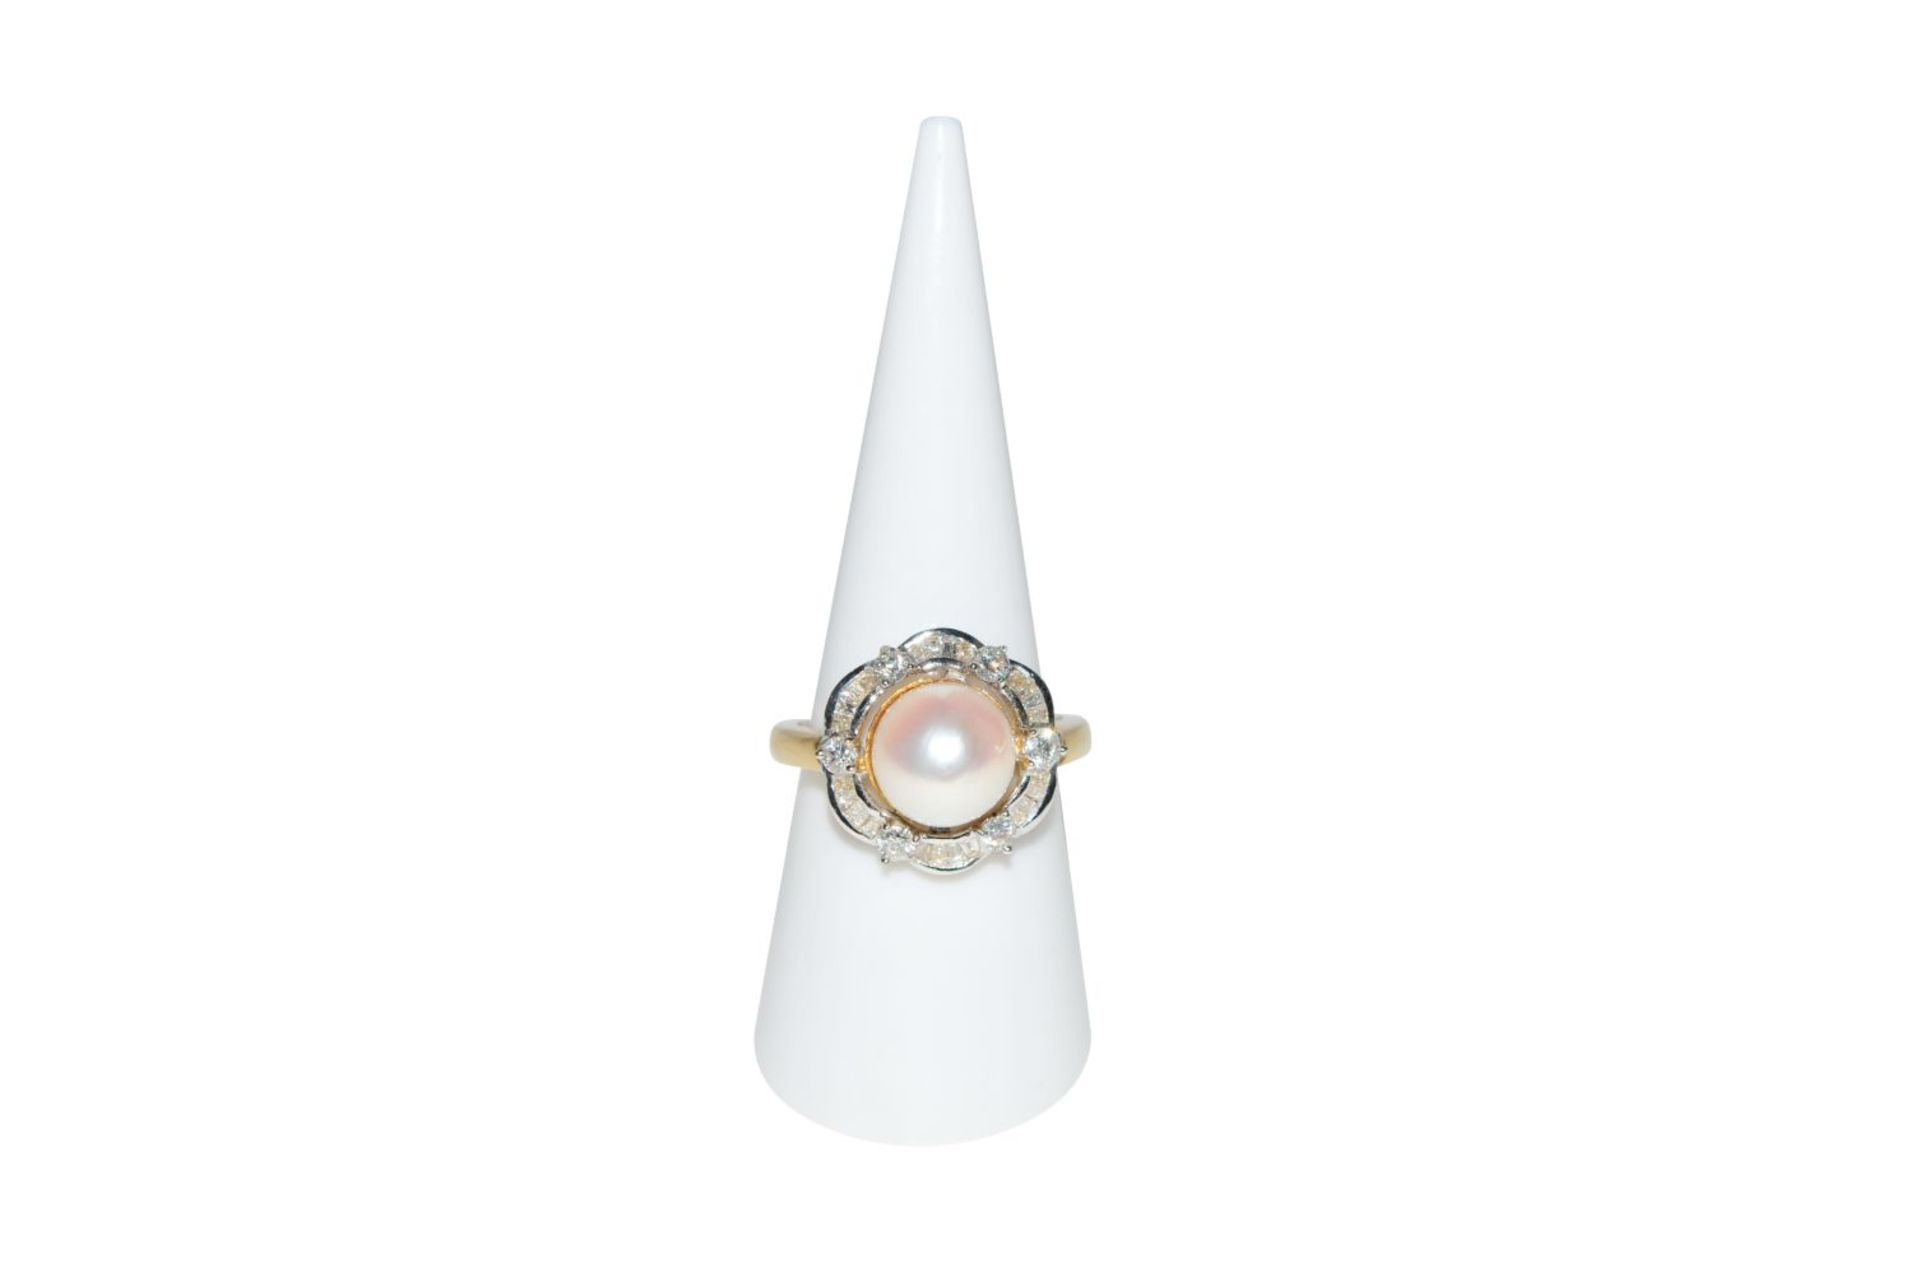 Los 89 - Brilliant ring with South Sea pearl18Kt gold ring with diamonds, total carat weight approx. 0.65ct